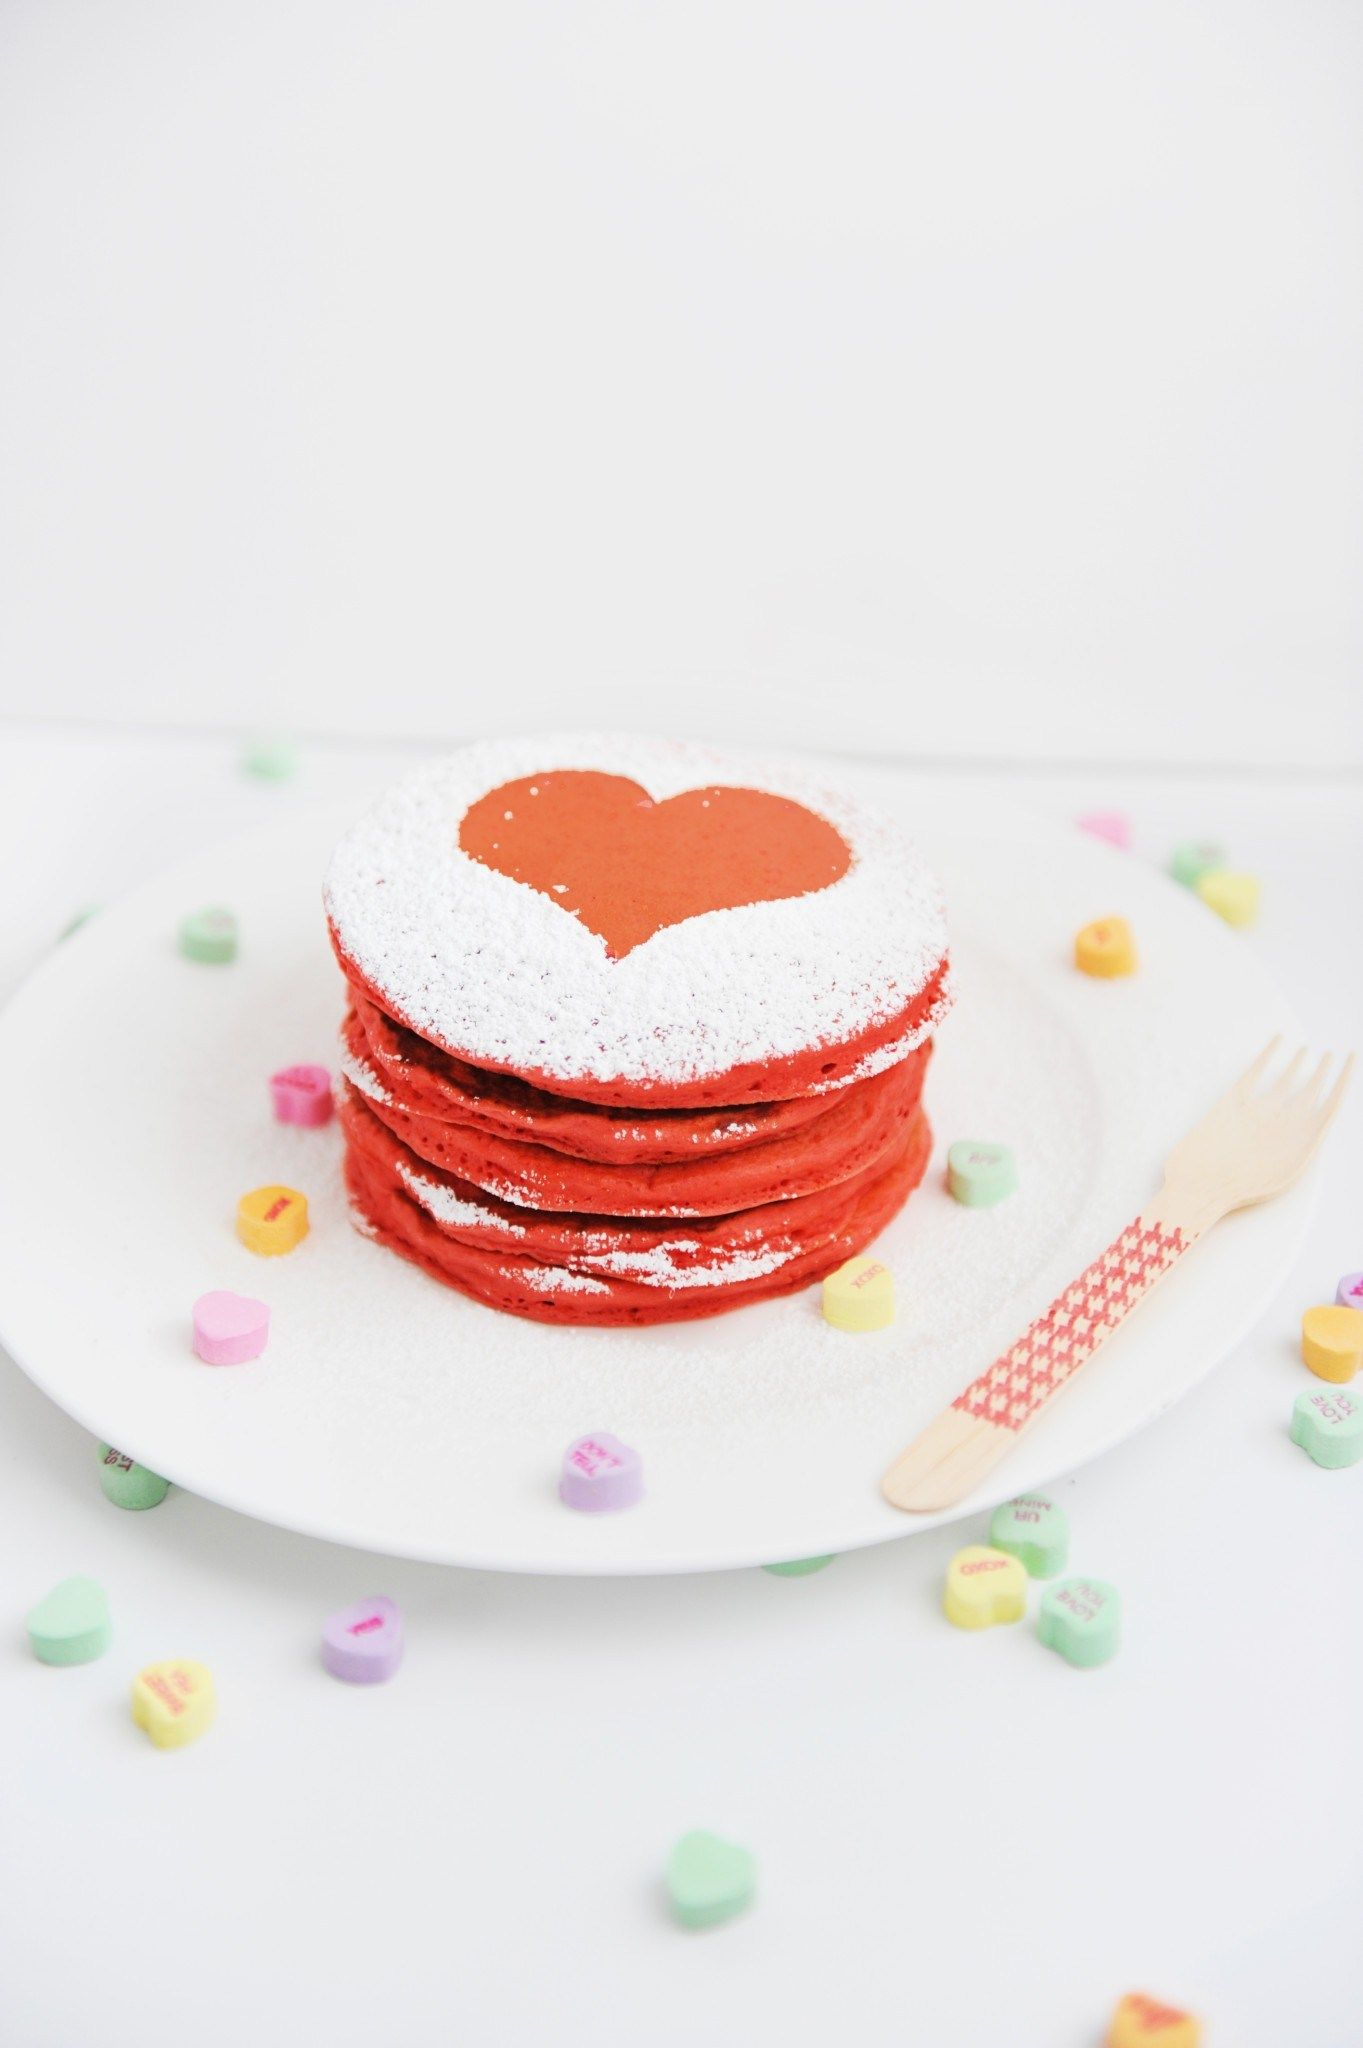 Make these Easy and delicious Red Valentine Heart Pancakes. #breakfast #pancakes #valentine #heart #recipe #partyfood #PinkPeppermintDesign